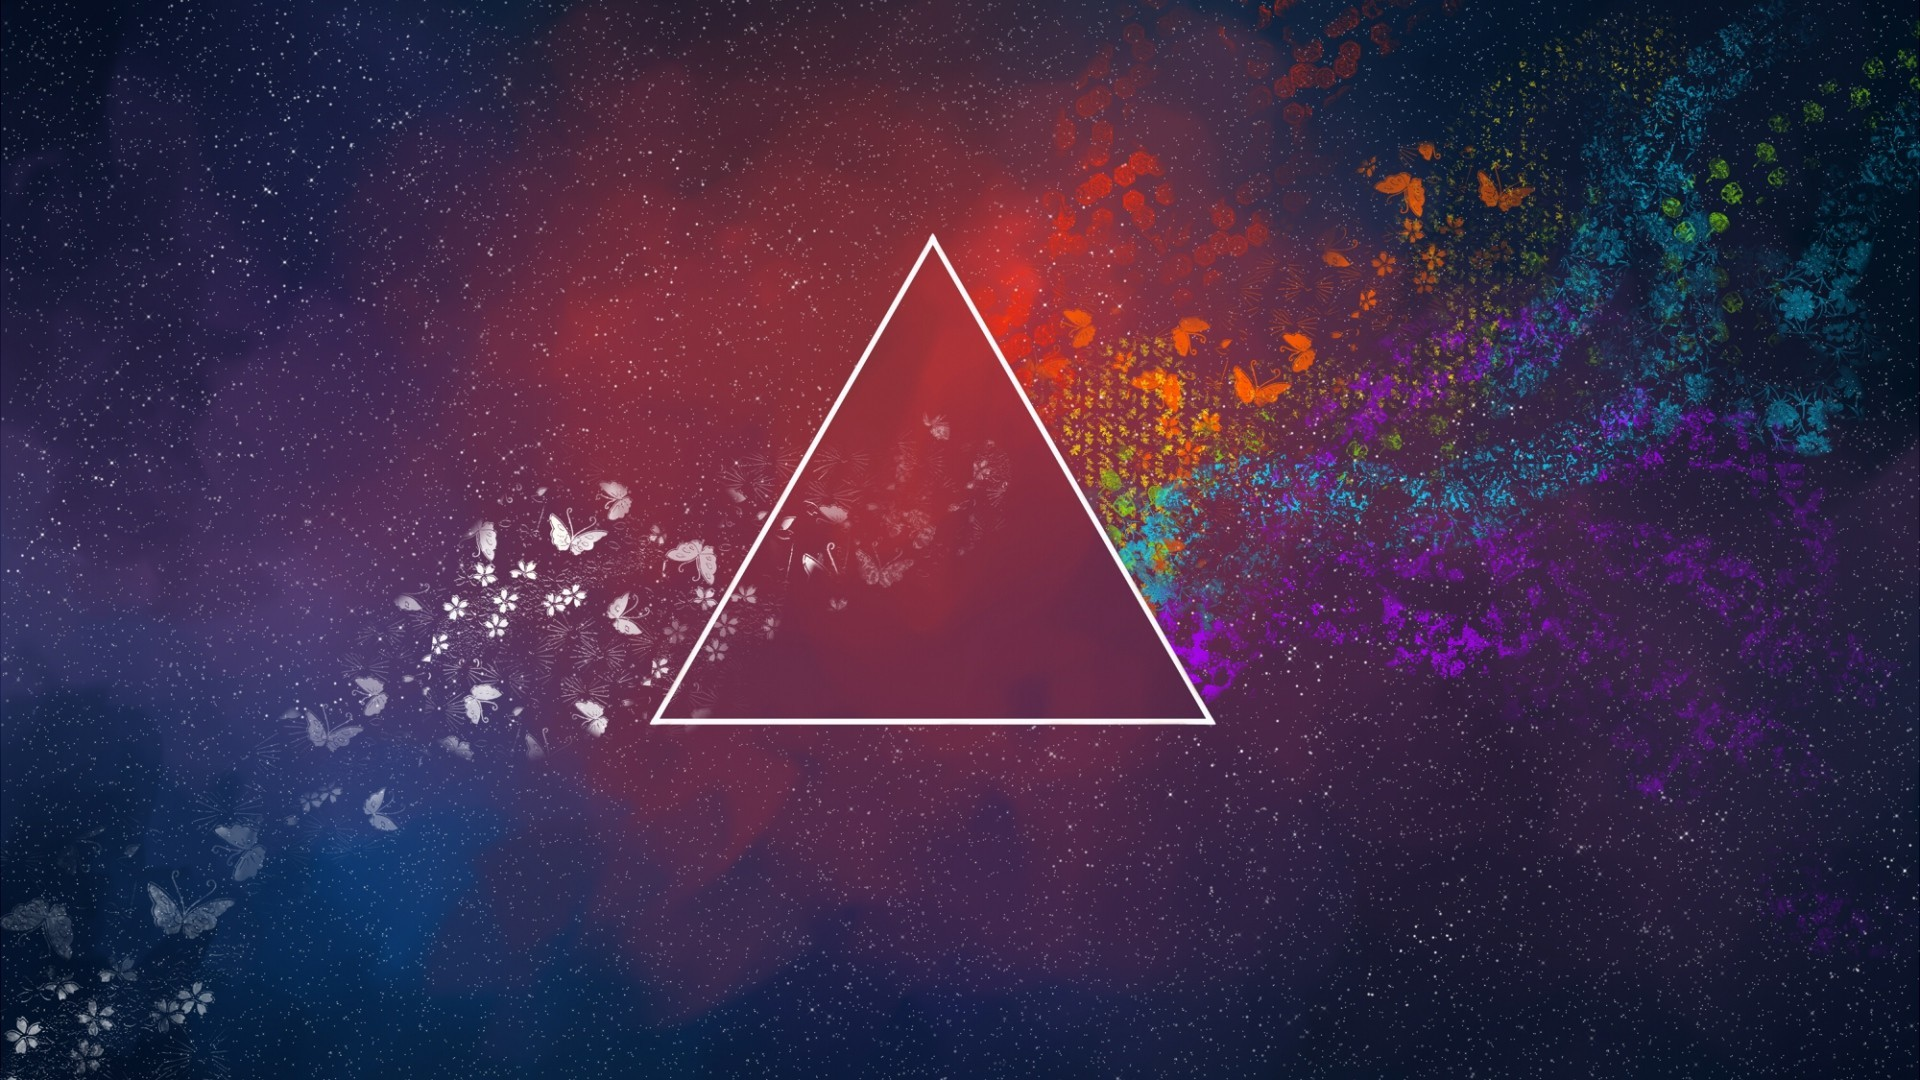 1920x1080 Images Download Pink Floyd Wallpapers HD. | Illuminati: Conspiracy .